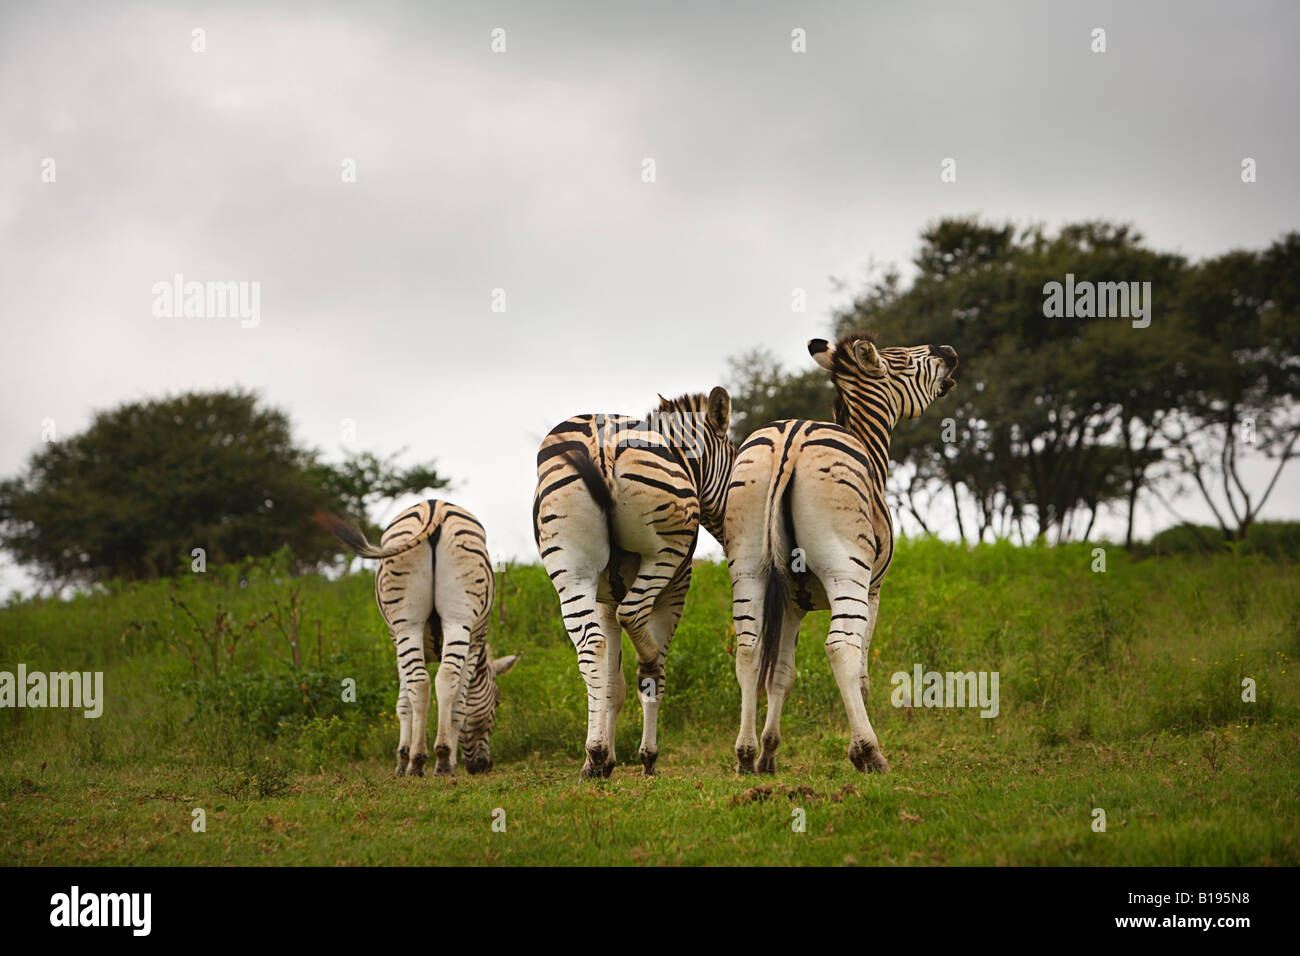 The backside of three zebras, South Africa - Stock Image